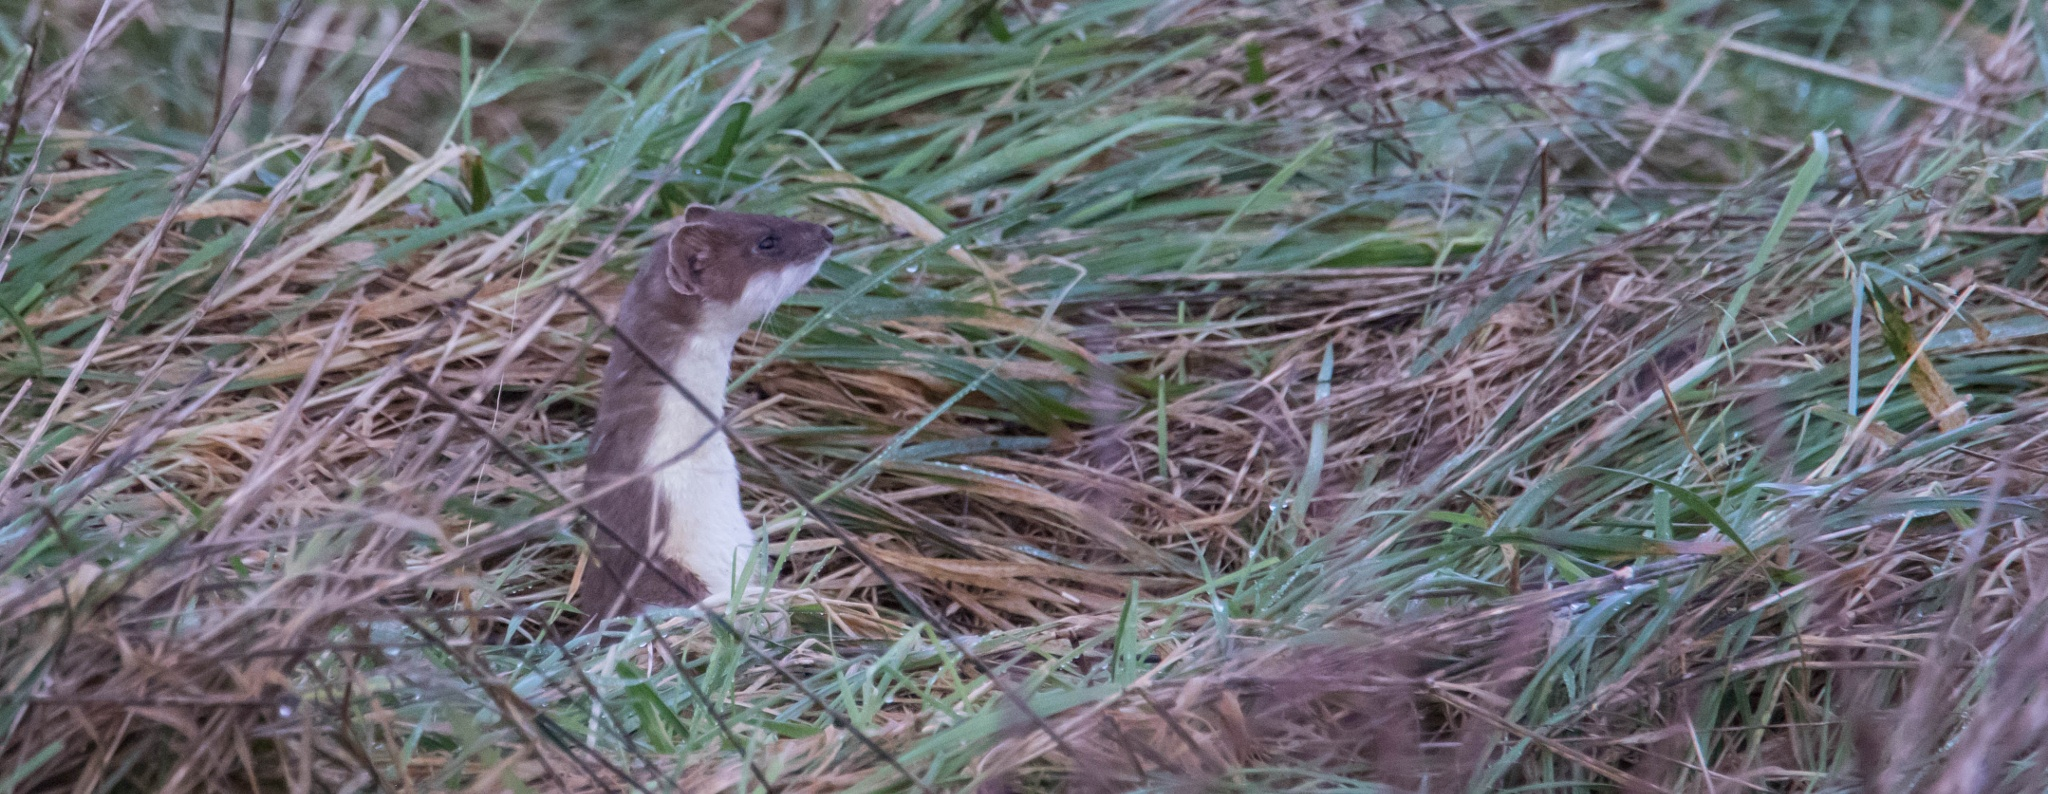 Mr stoat on the look out  by jameswardle2000